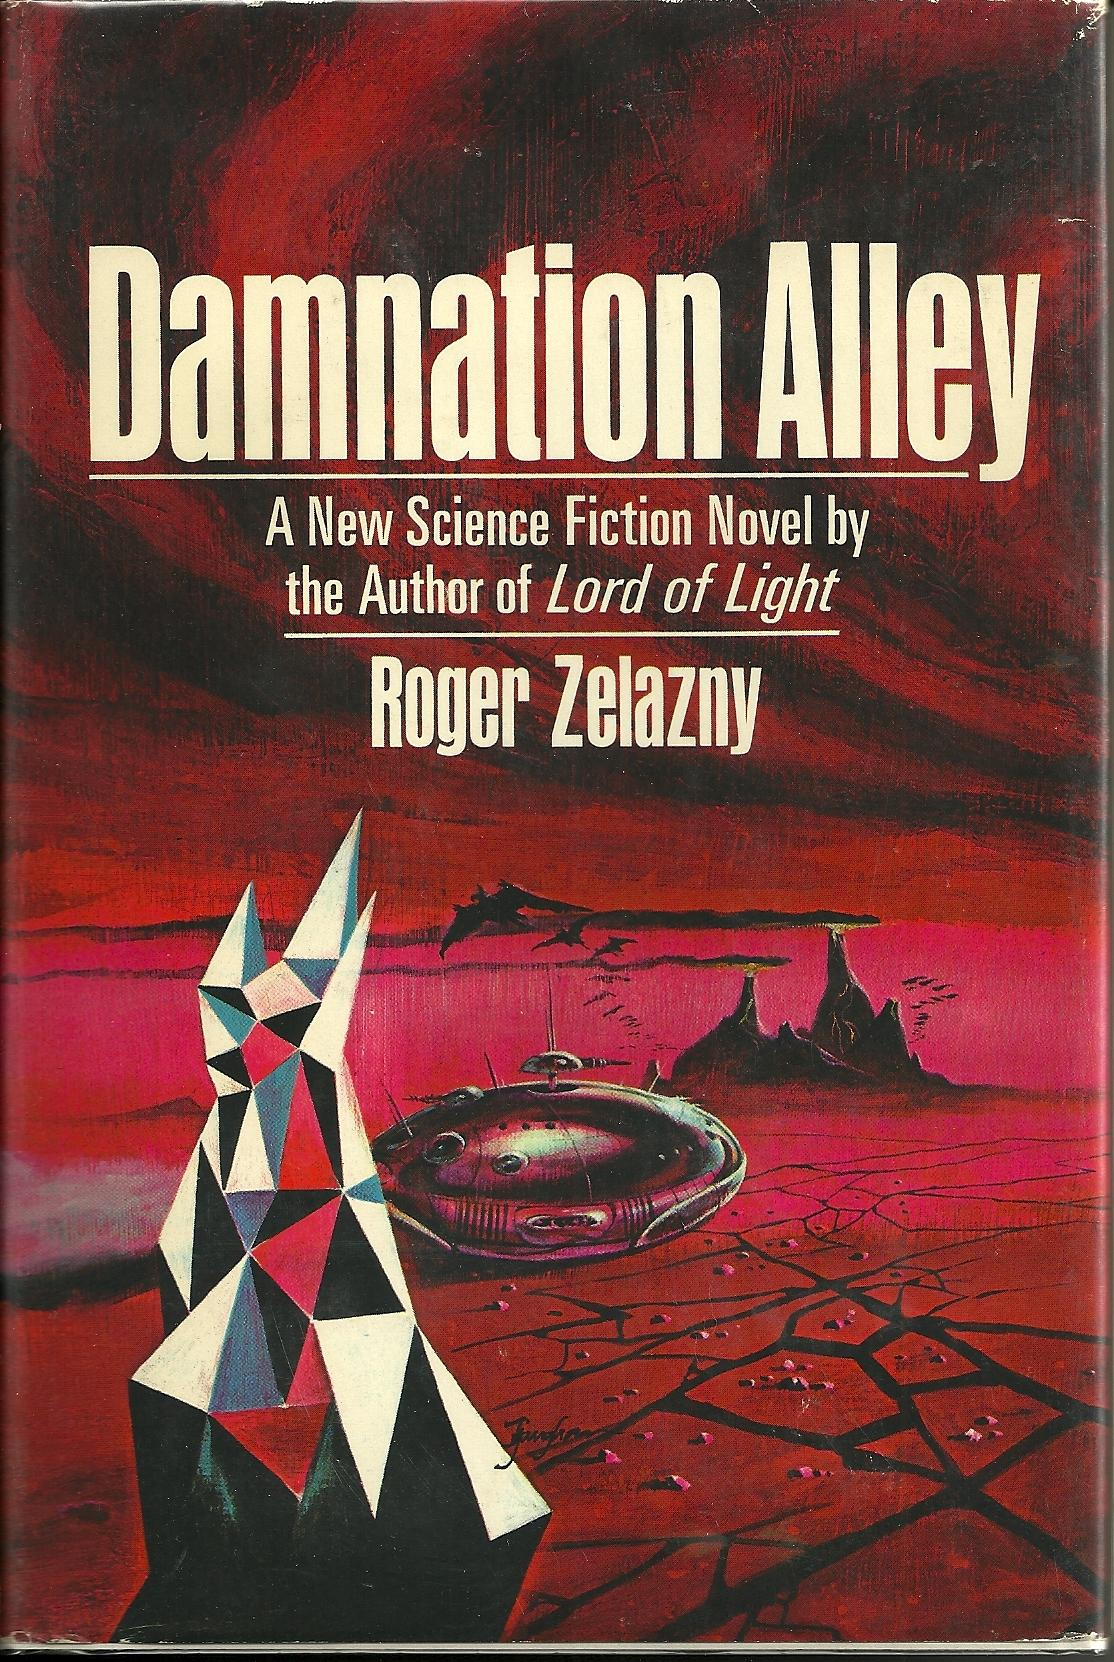 Vintage Treasures: Damnation Alley by Roger Zelazny3 Comments »Leave a comment